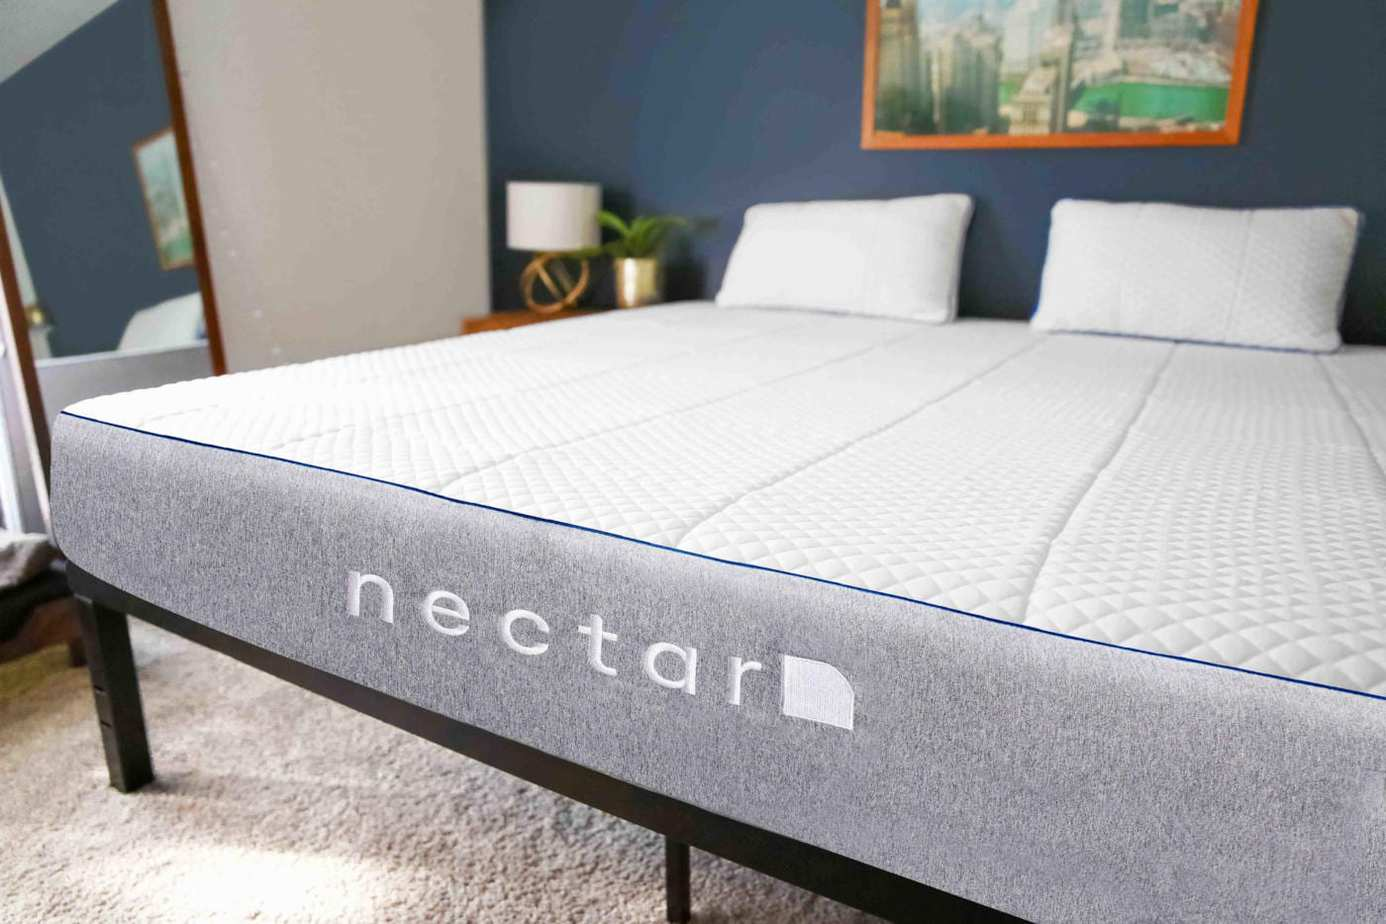 How Long Does A Nectar Mattress Take To Expand